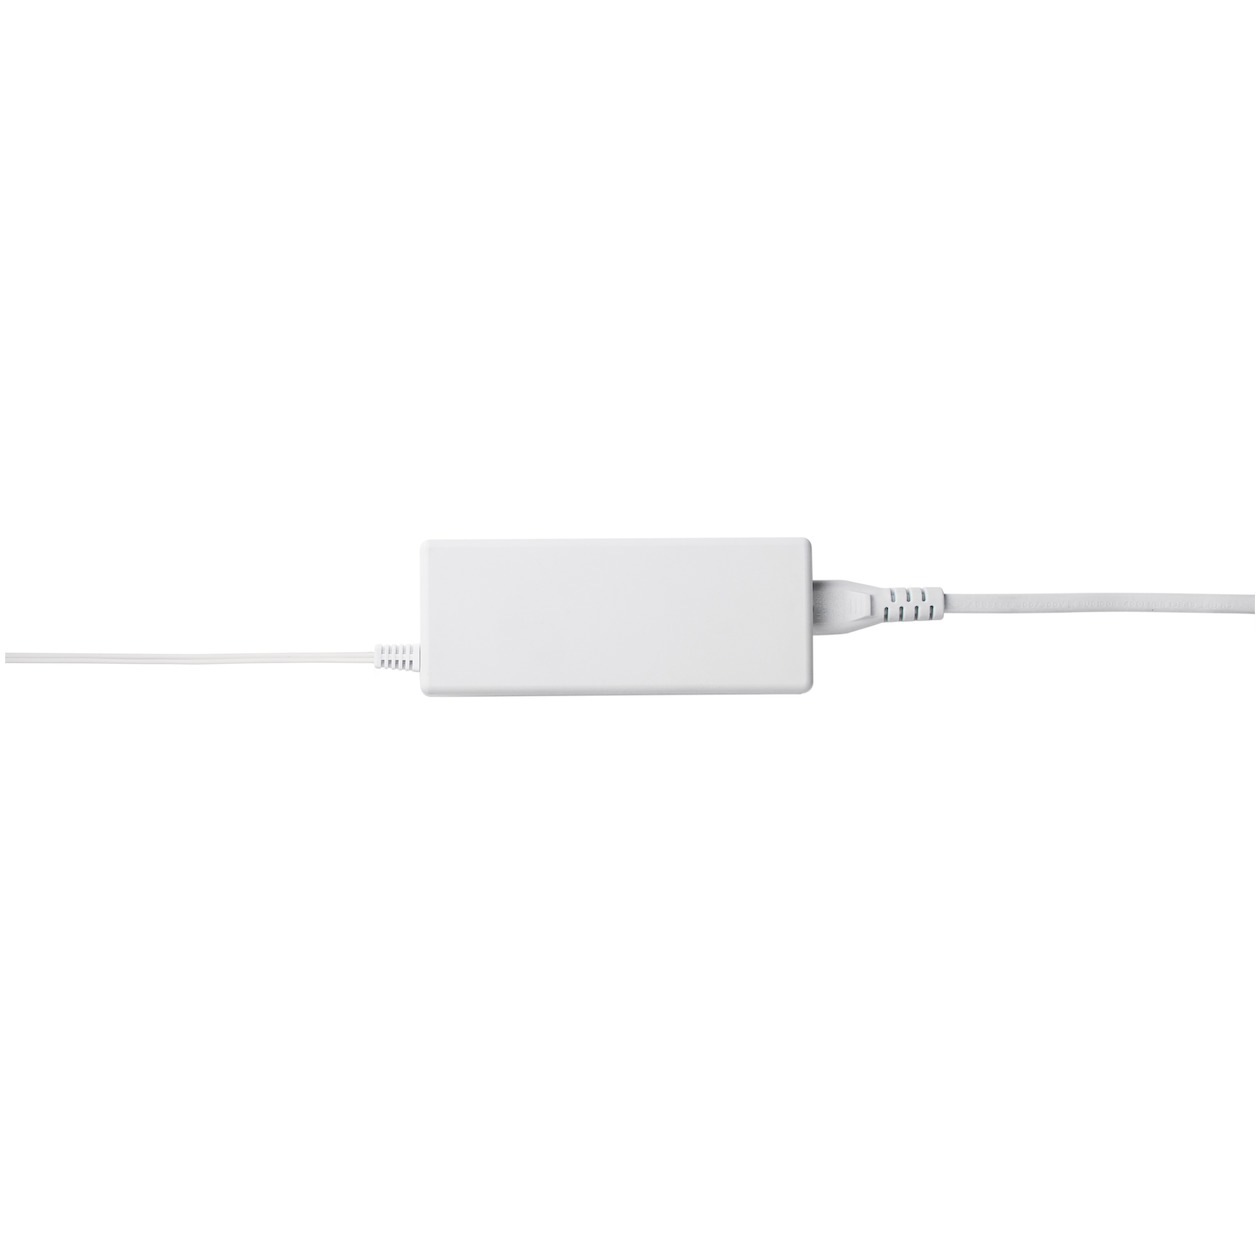 Innr smartverlichting Power Adapter - PS 200